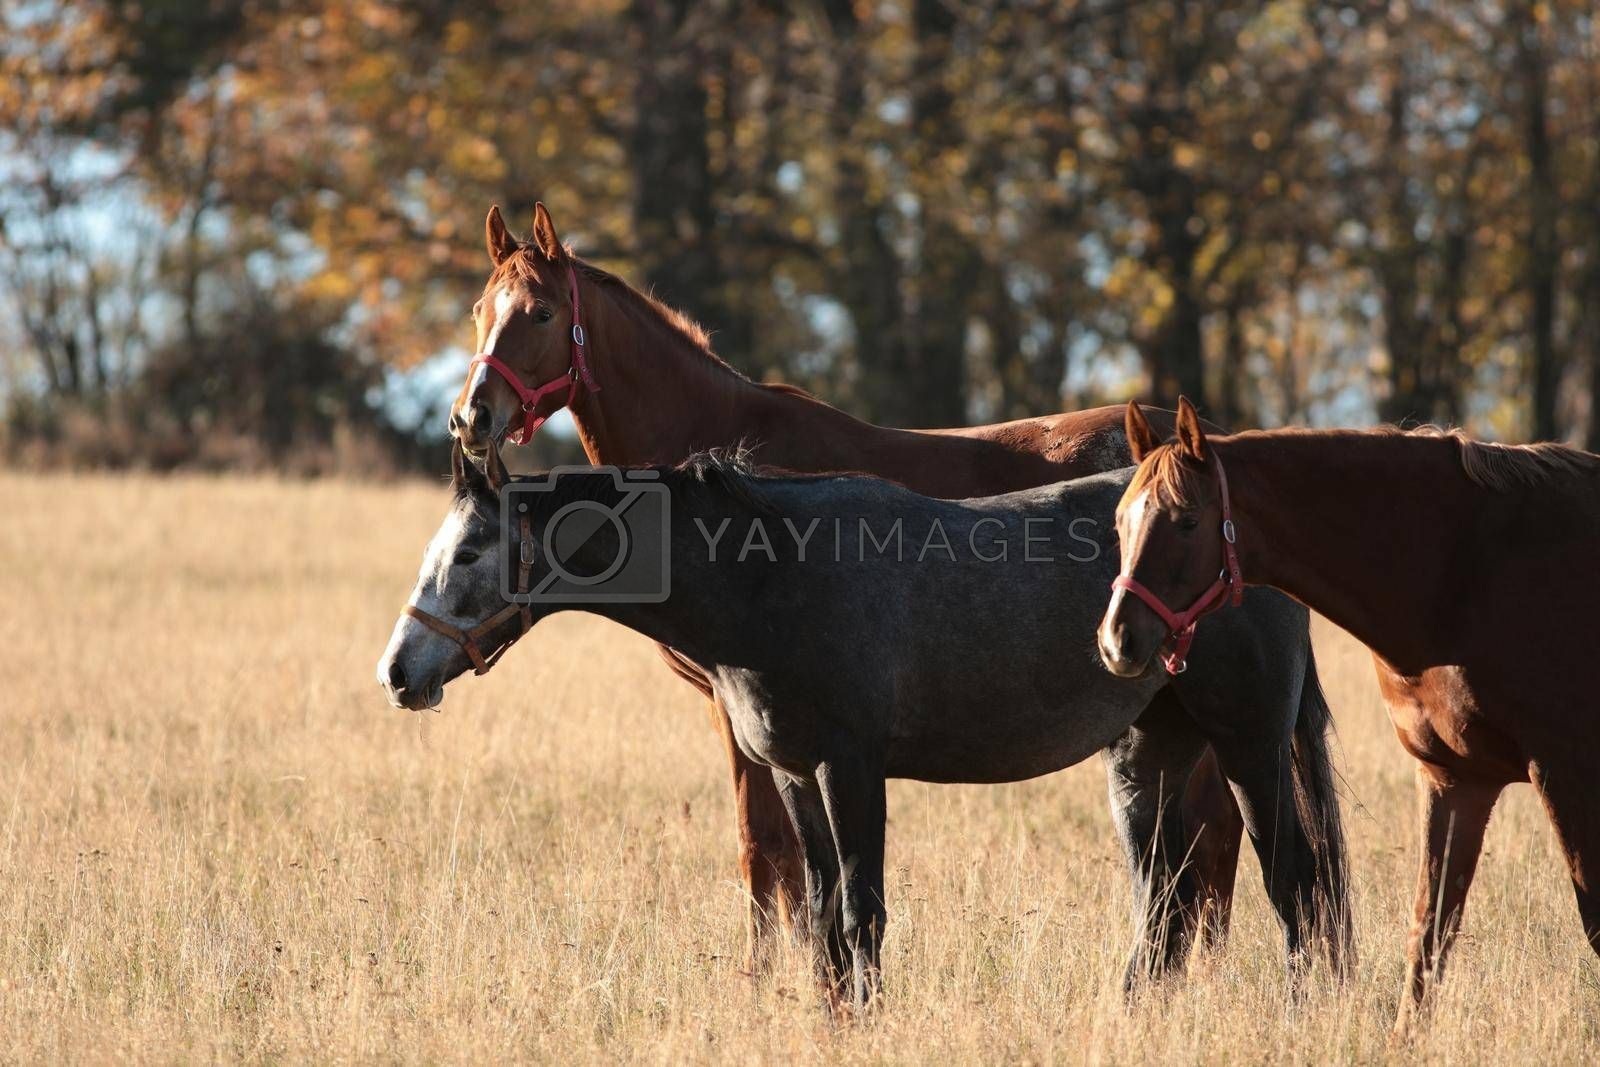 Horses on a background of trees.